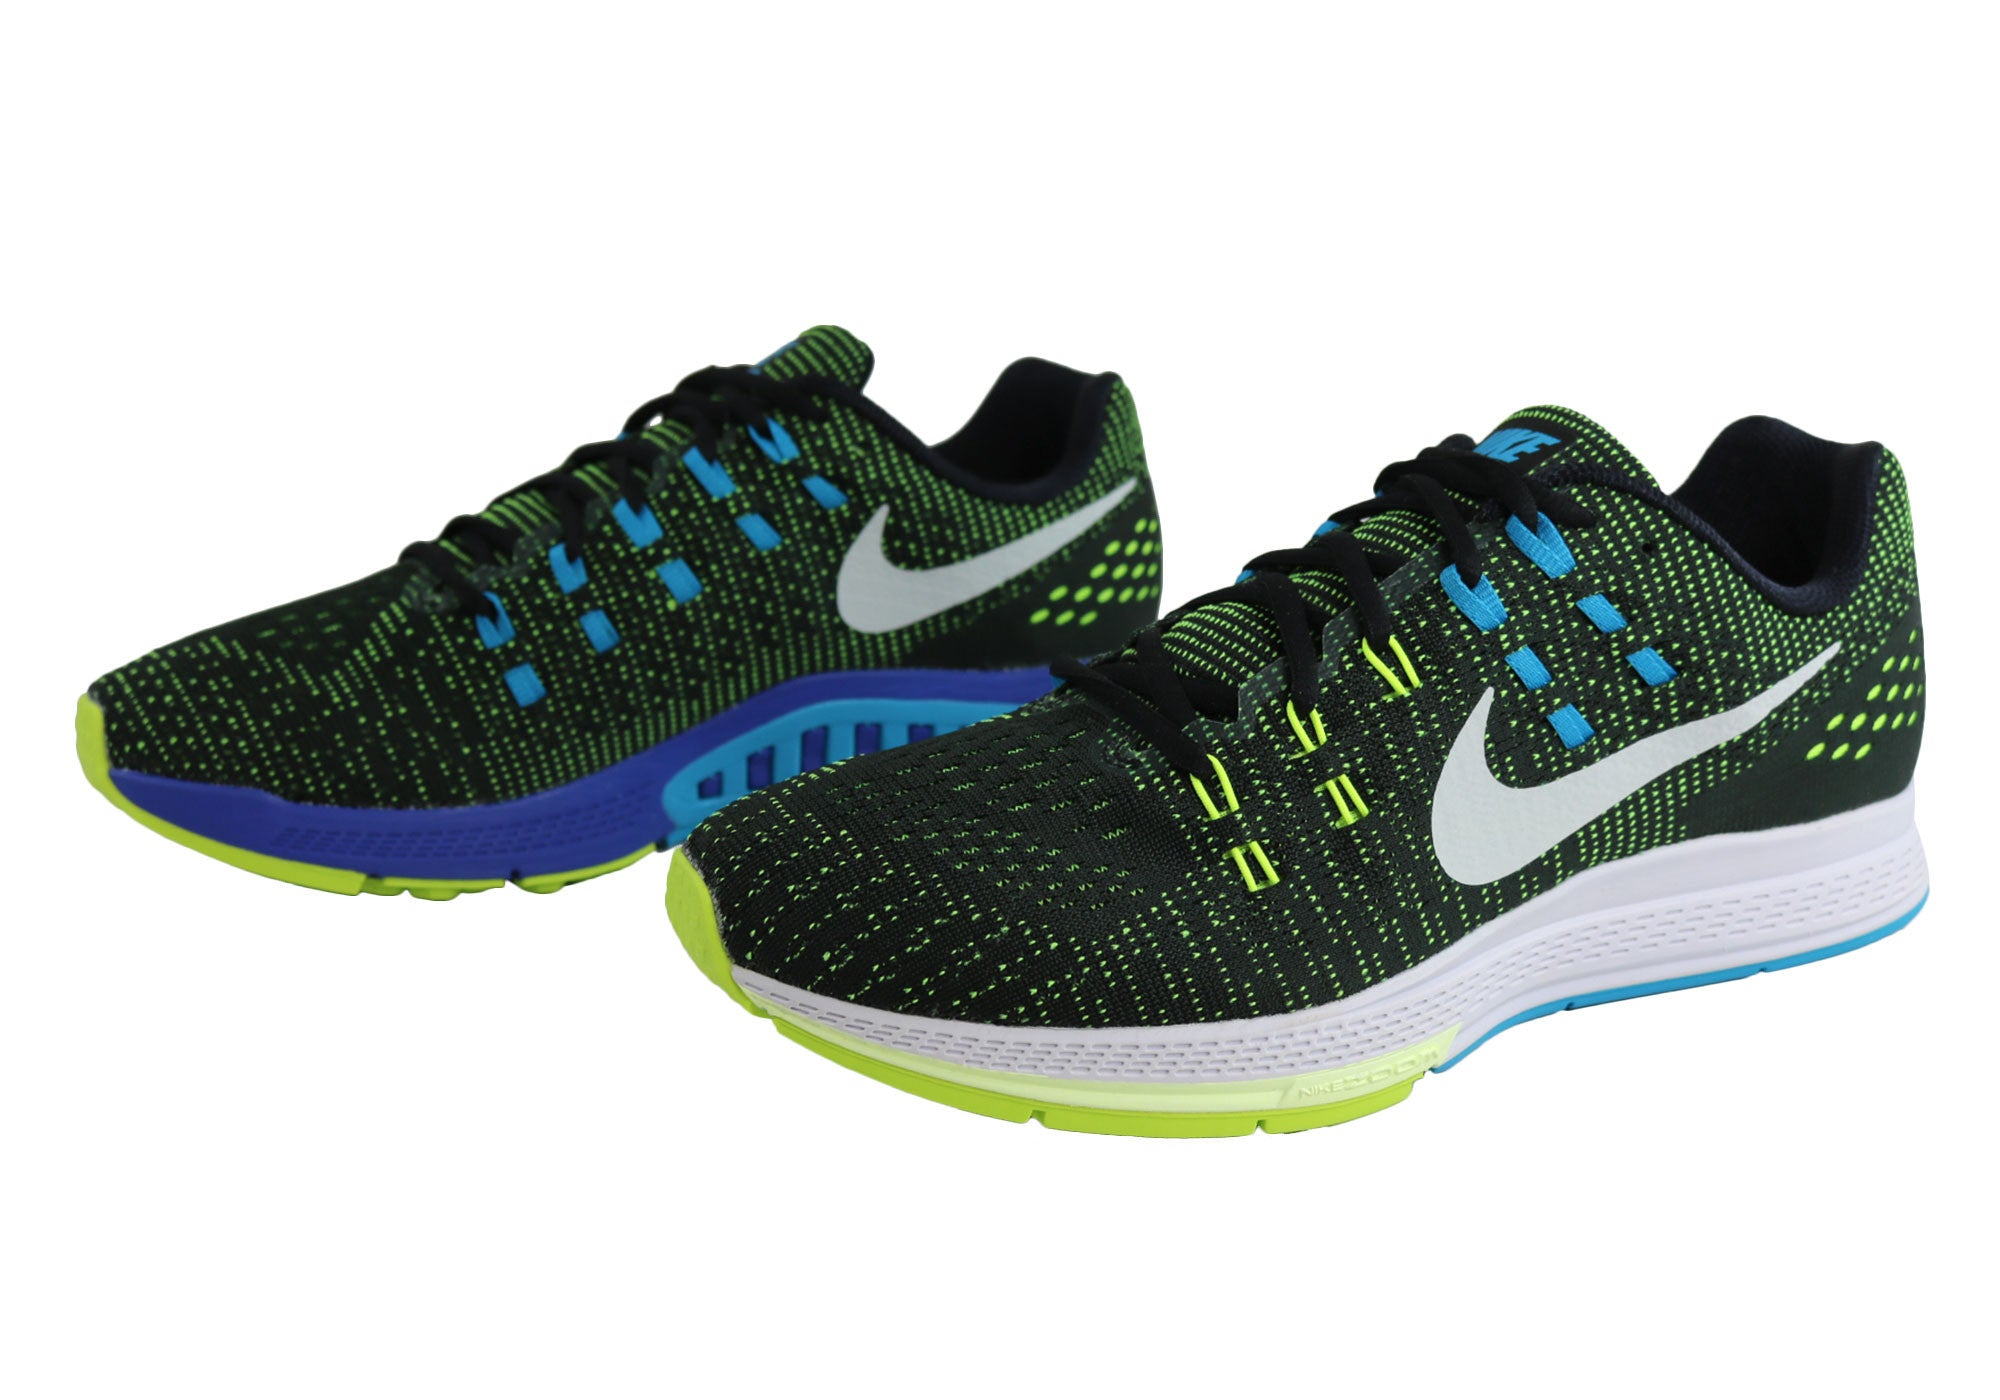 74cff2ca65a2a ... green strike volt 5dbd7 53788  shopping nike air zoom structure 19 mens  cushioned running sport shoes 72d67 5bbc0